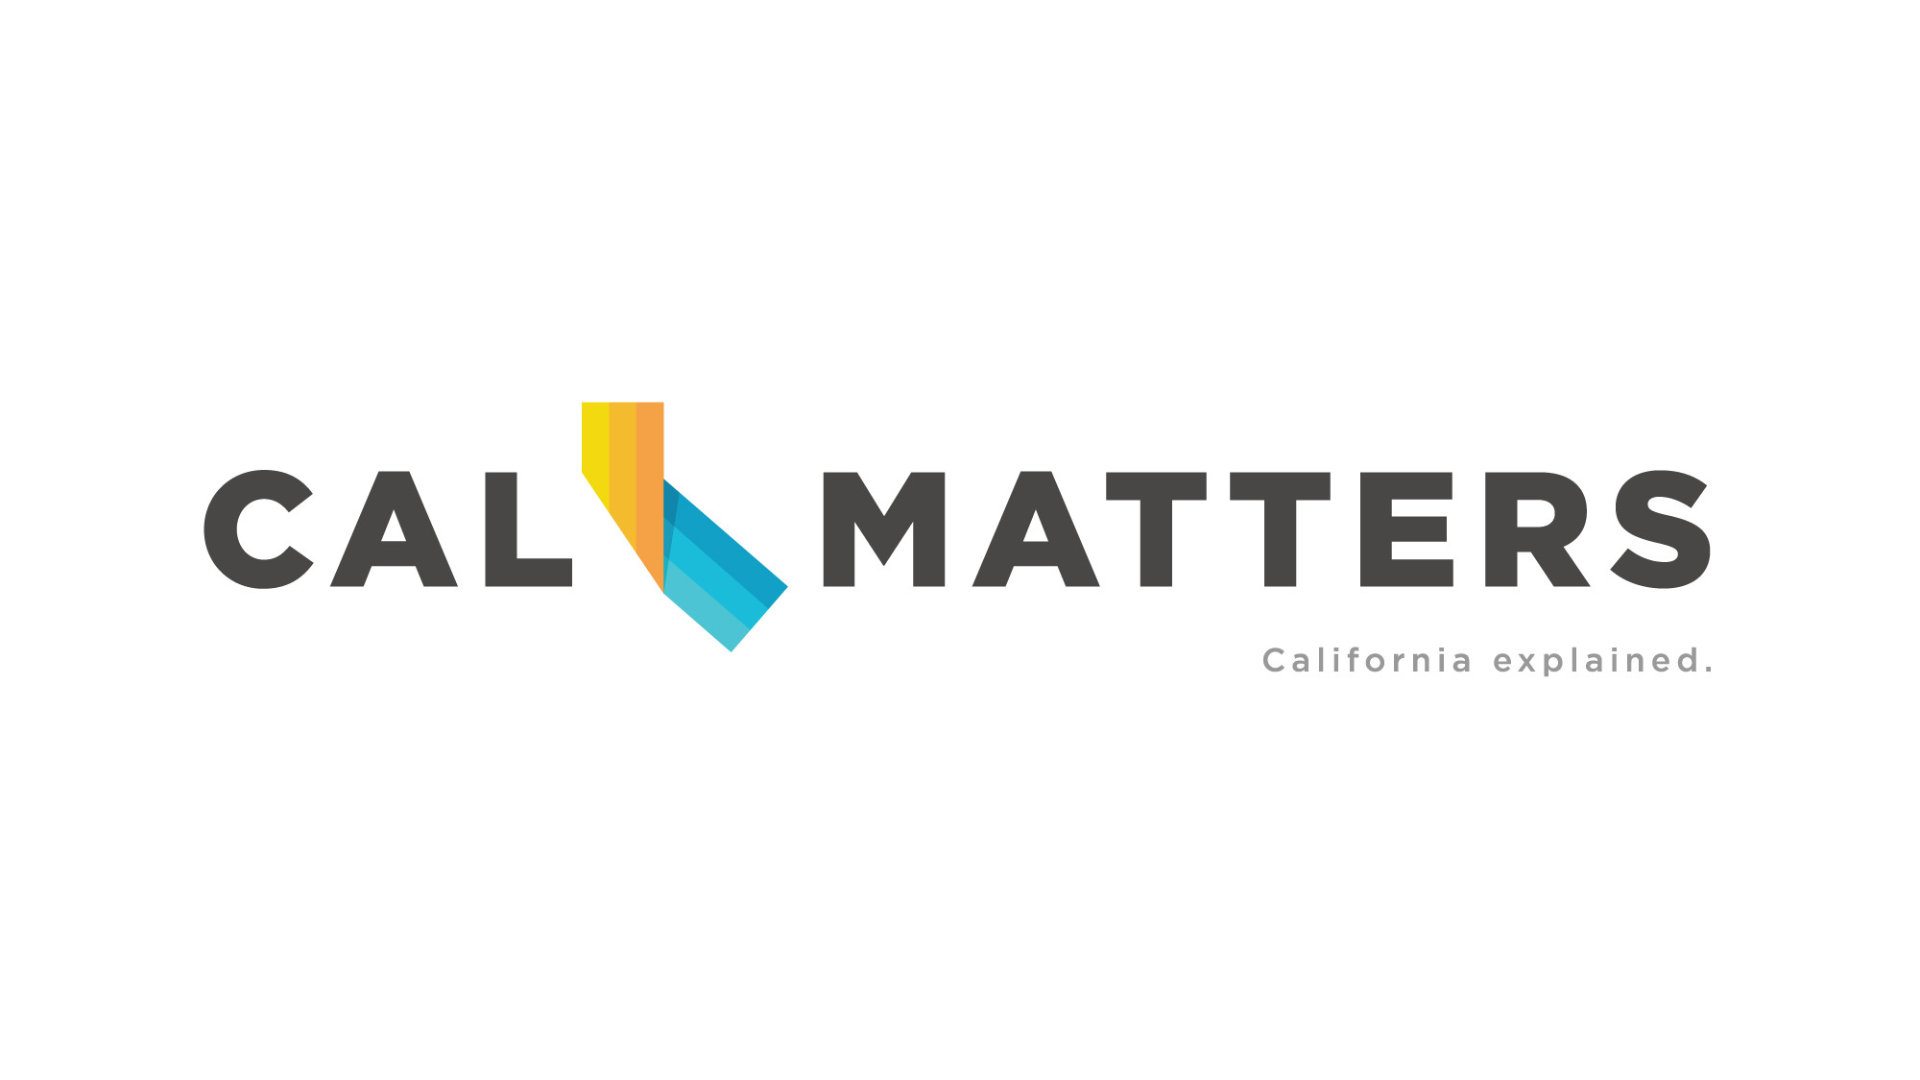 Cal Matter Logo Cover Photo in Color